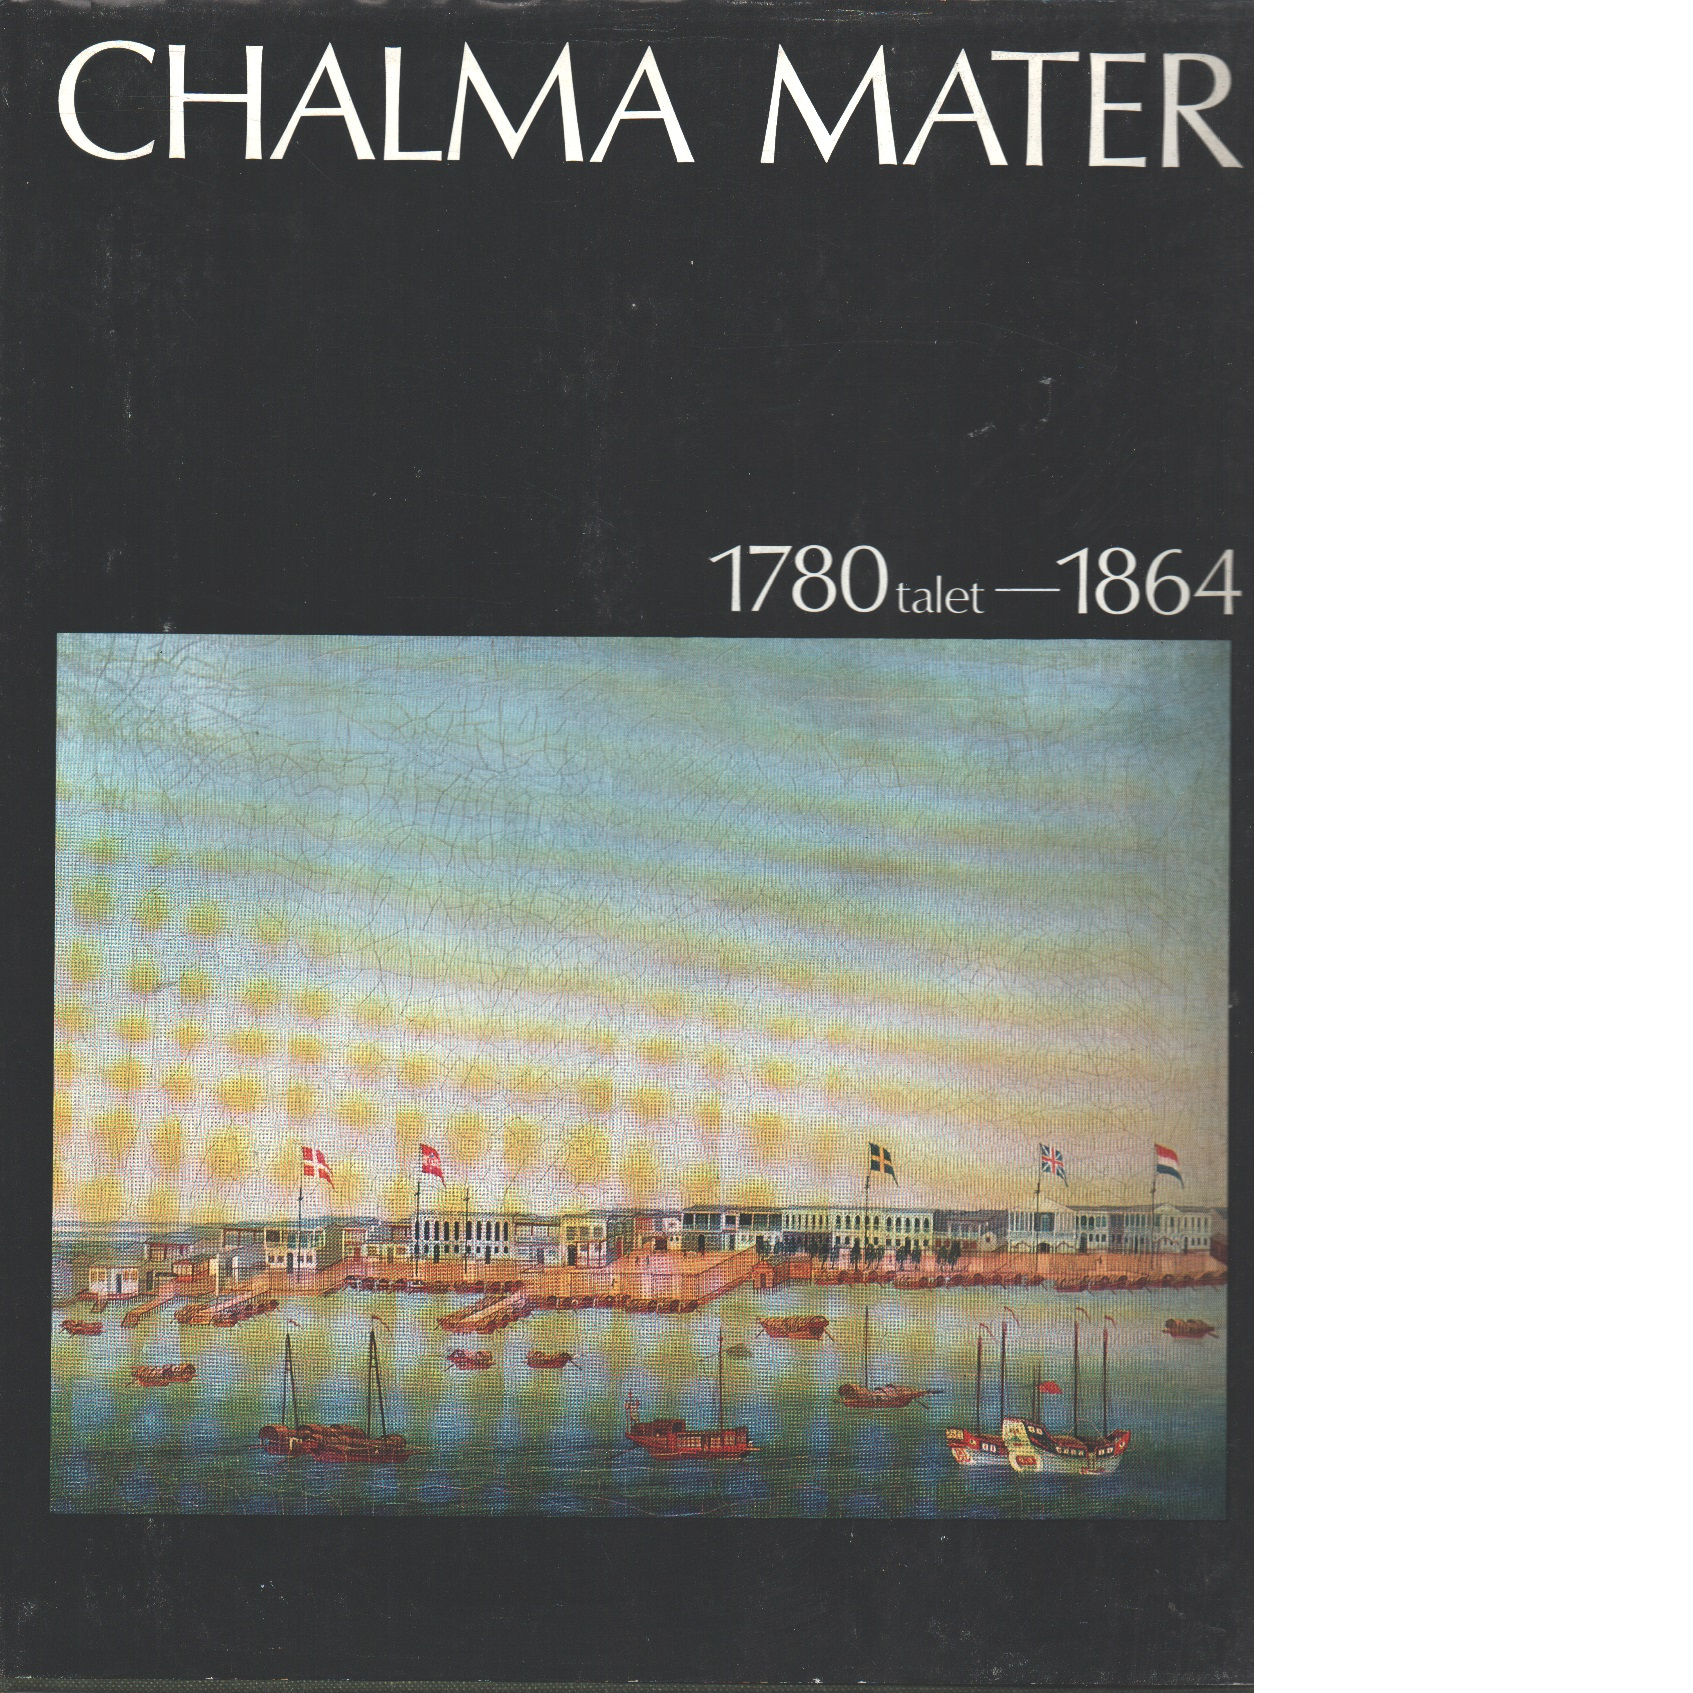 Chalma mater. D. 1, 1780-talet - 1864 - Red.